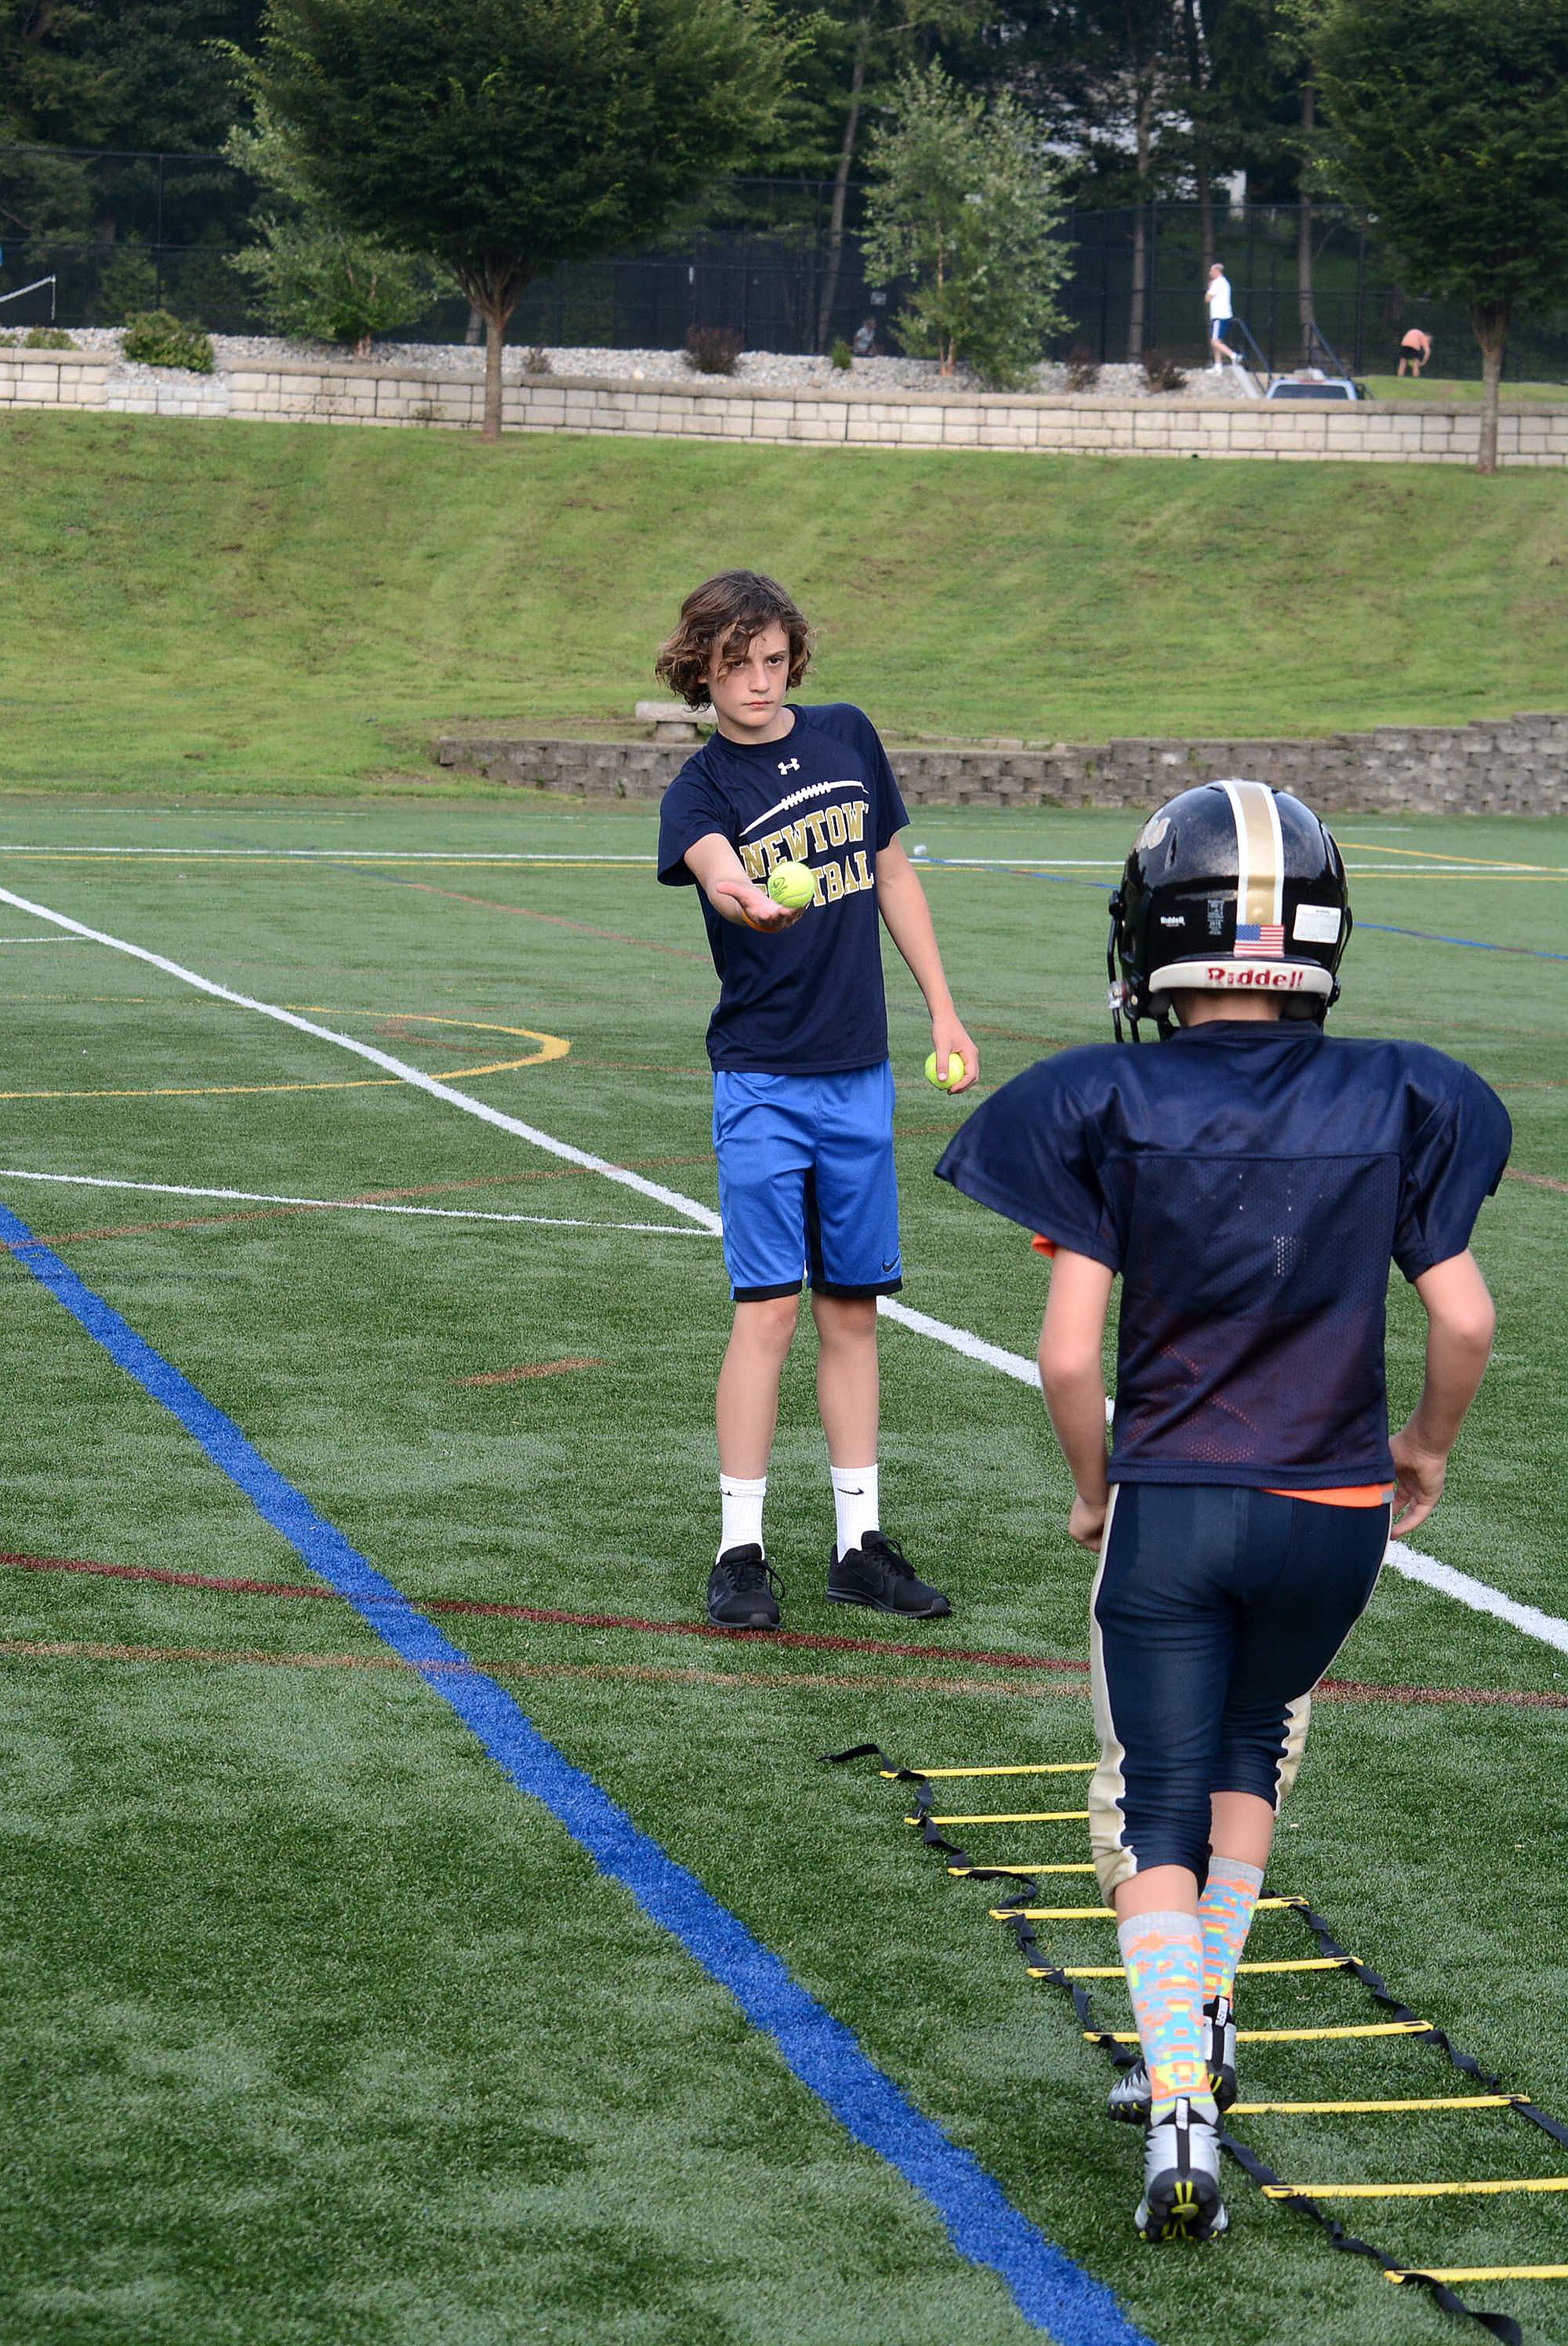 Youth Tackle Football Participation >> Giving Back Nhs Players Assist Youth Football Participants On The